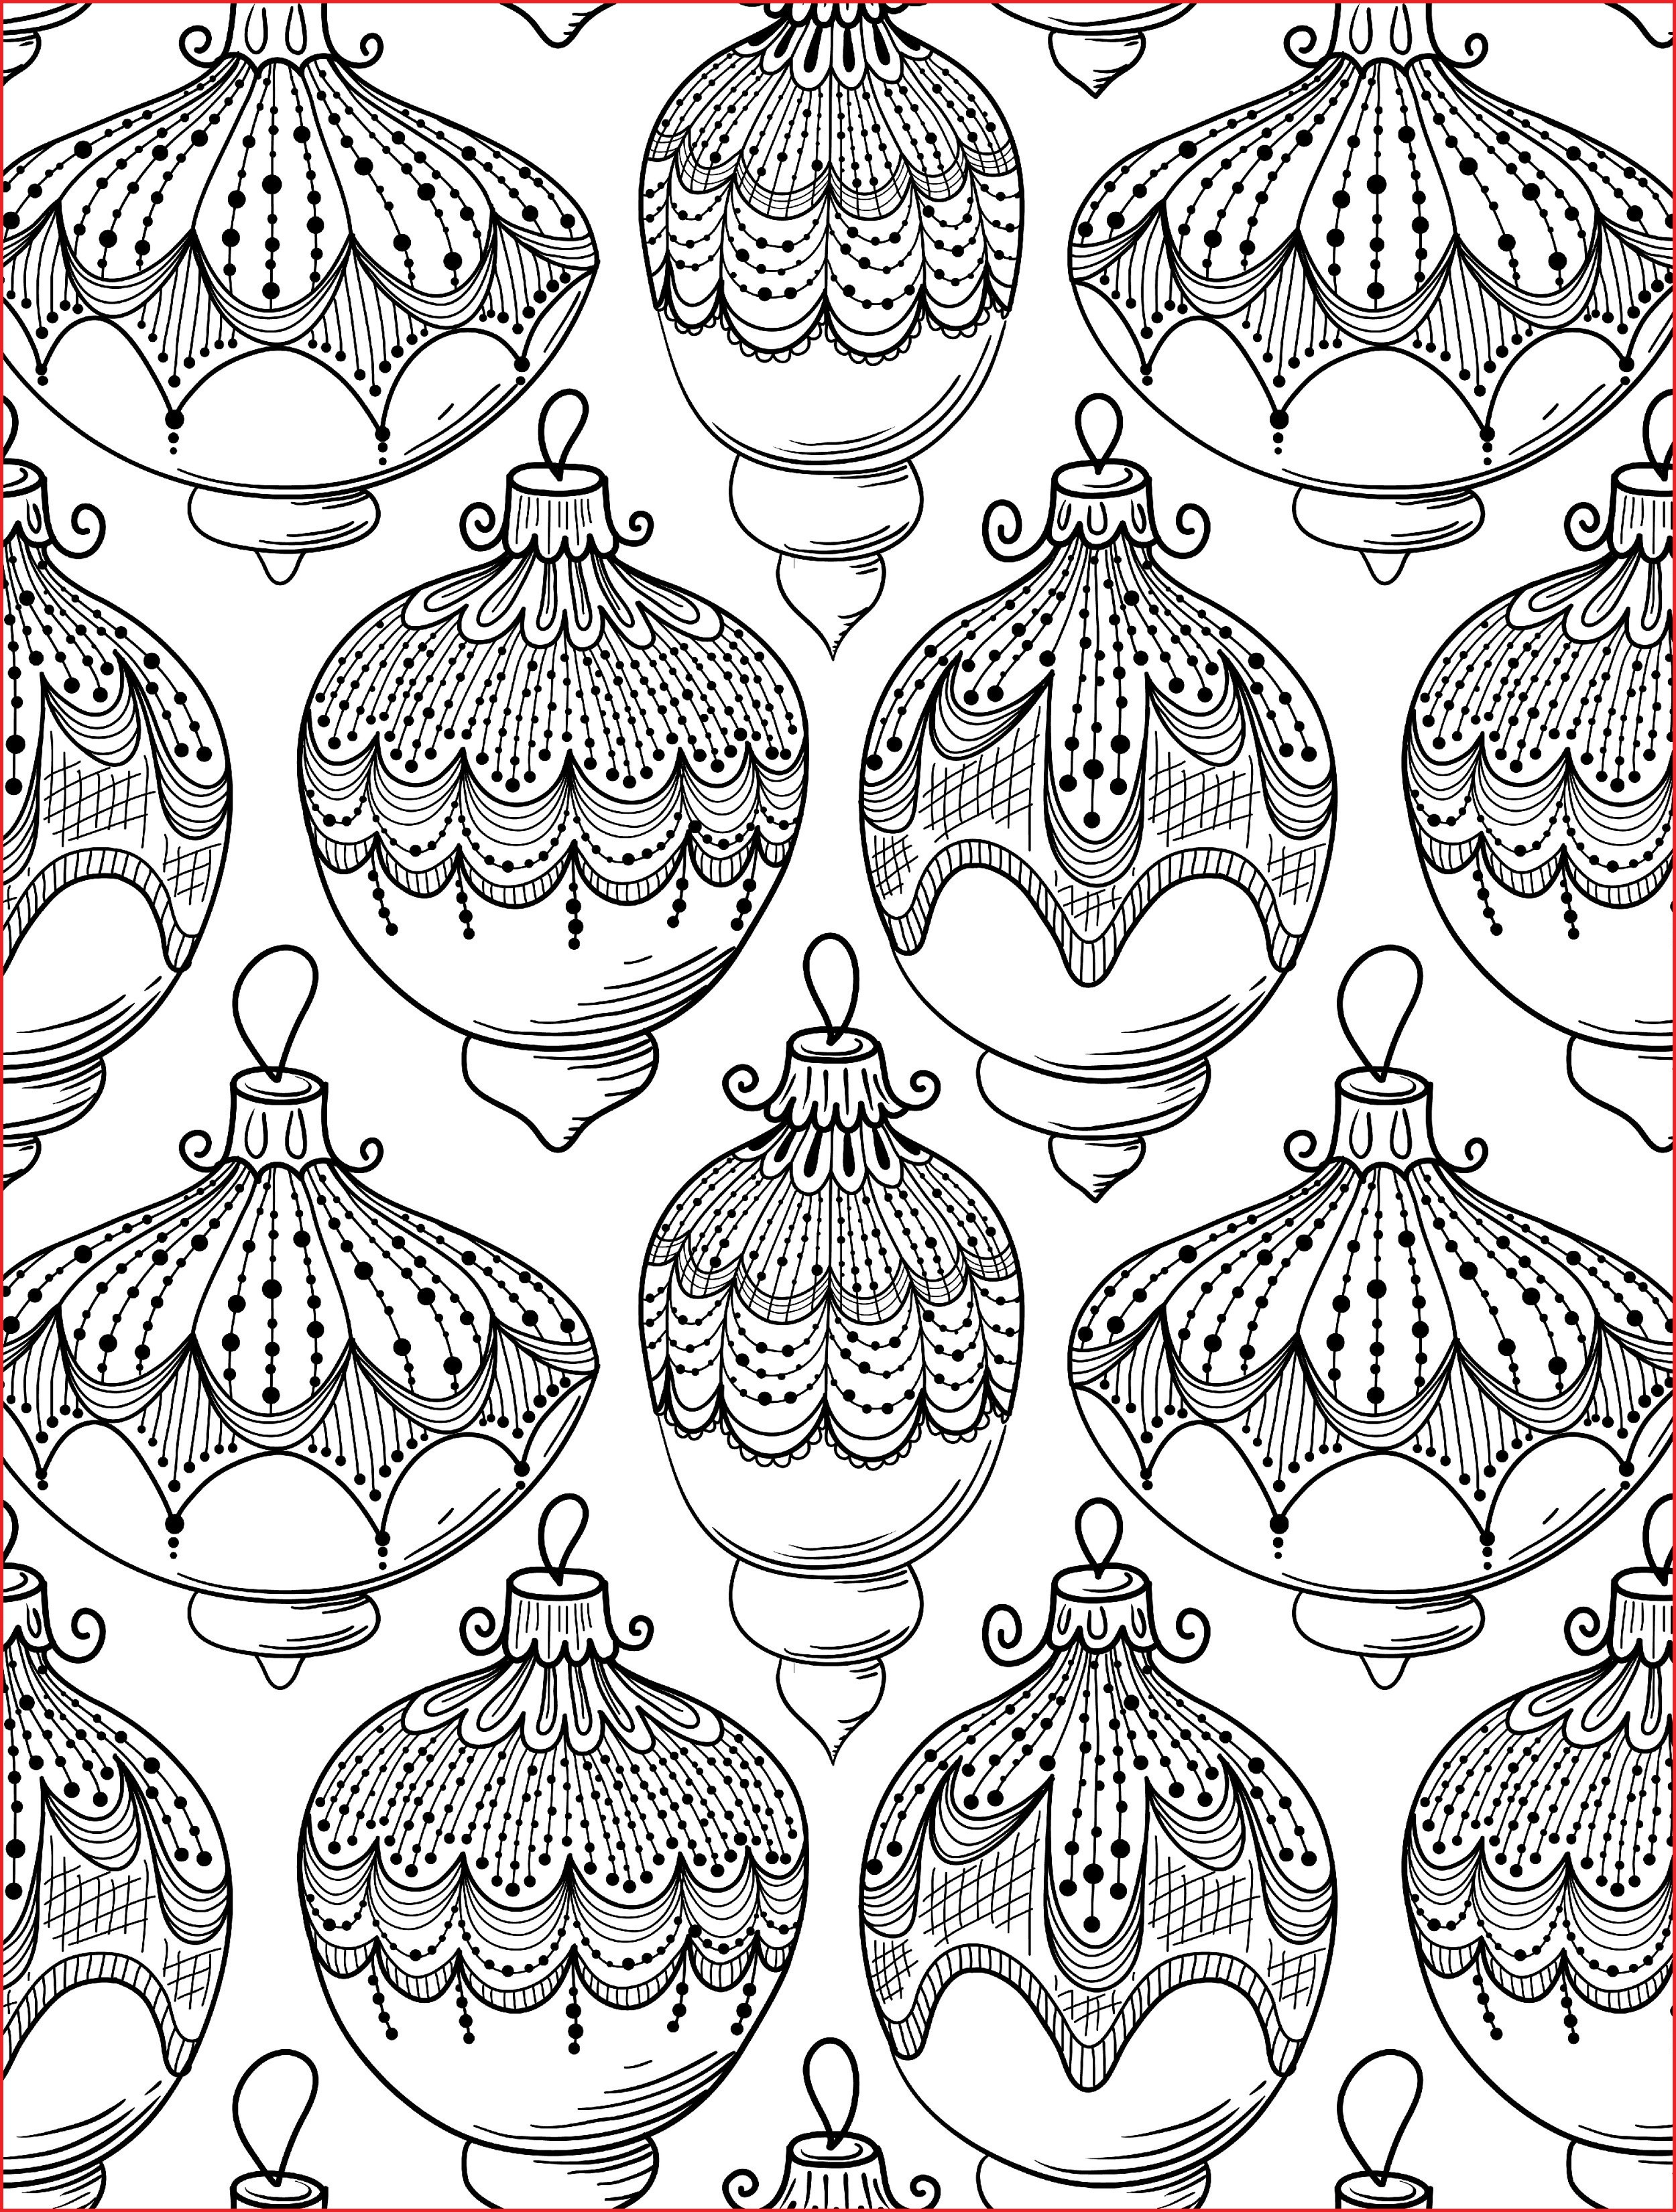 Detailed Christmas Coloring Pages For Adults With Adult 27583 Lovely Free Printable